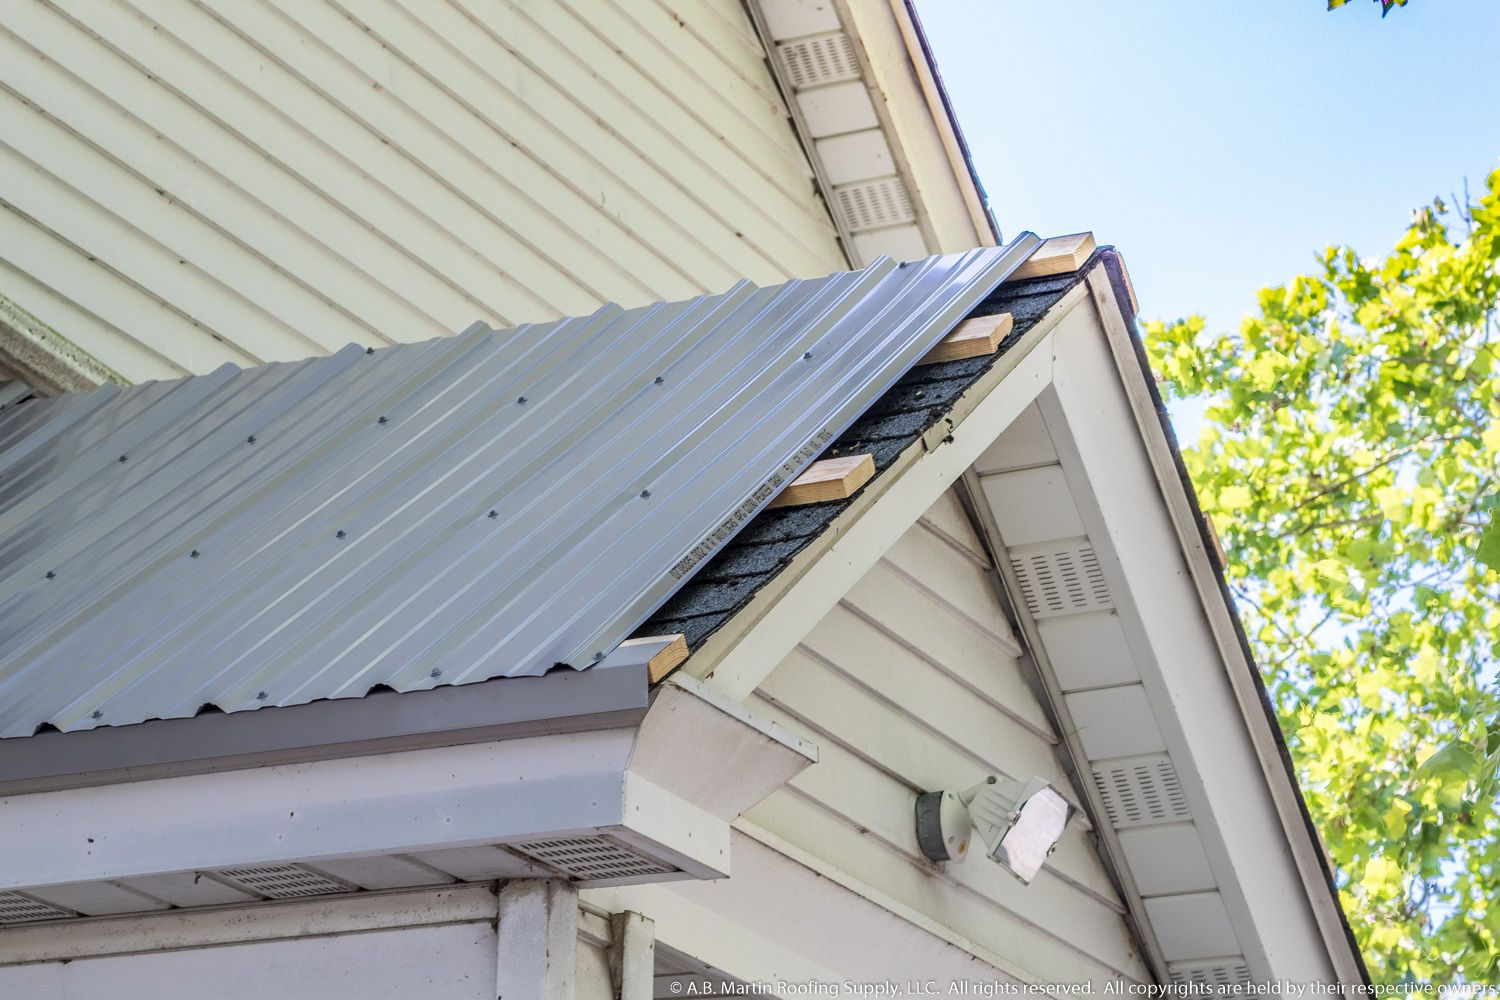 Is A Metal Roof Way More Noisy Than Shingles? A.B